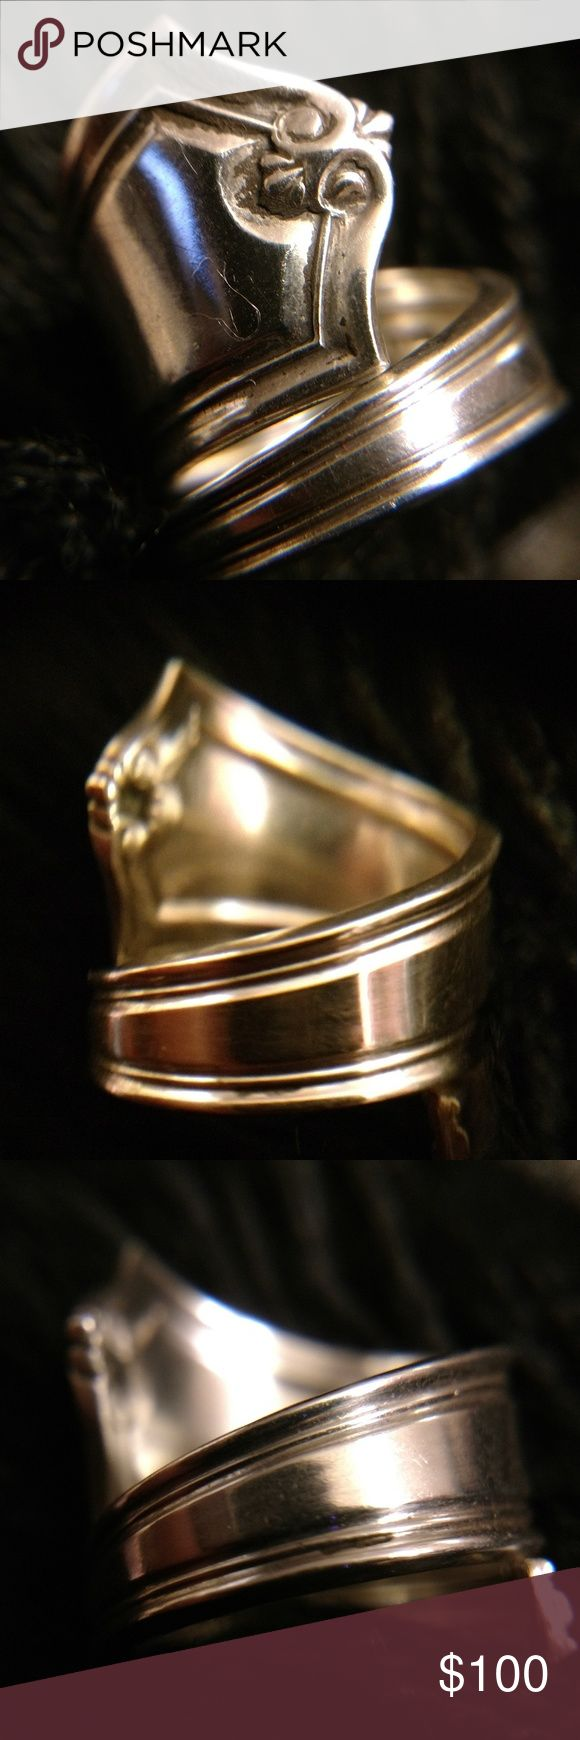 Vintage estate Sterling silver spoon ring Spoon rings date back to the 1600's. They are a timeless classic.This piece is absolutely beautiful. It is definitely one of my favorites! Since it is actually made from a spoon, each piece is one of a kind.  A spoon ring can be sized to fit most fingers because they're an open design. No trades. Please see photo fo description and detail. Jewelry Rings